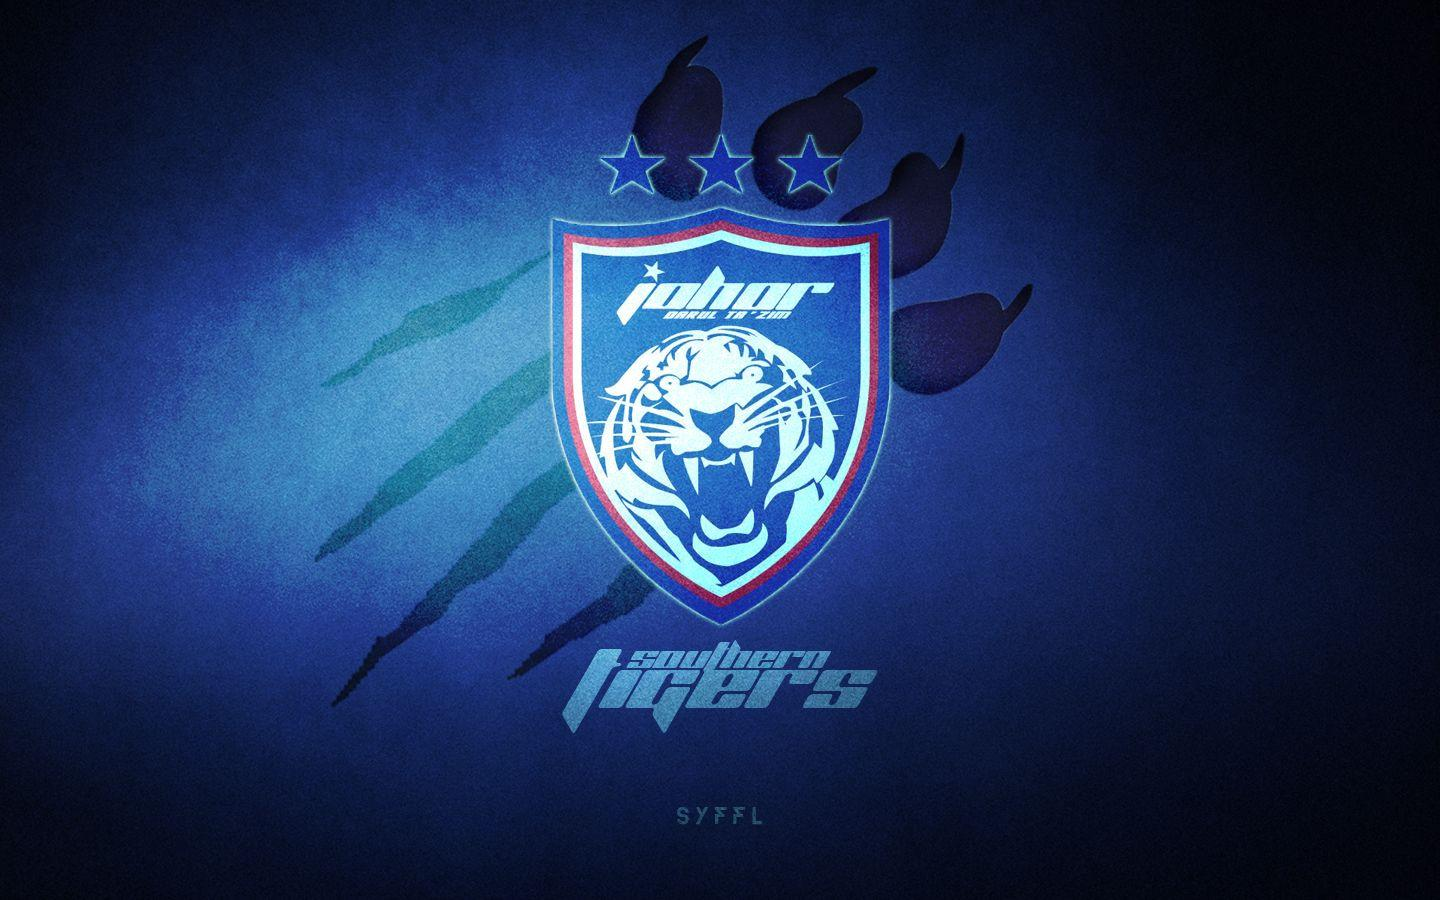 Johor Darul Tazim JDT logo wallpapers by TheSYFFL